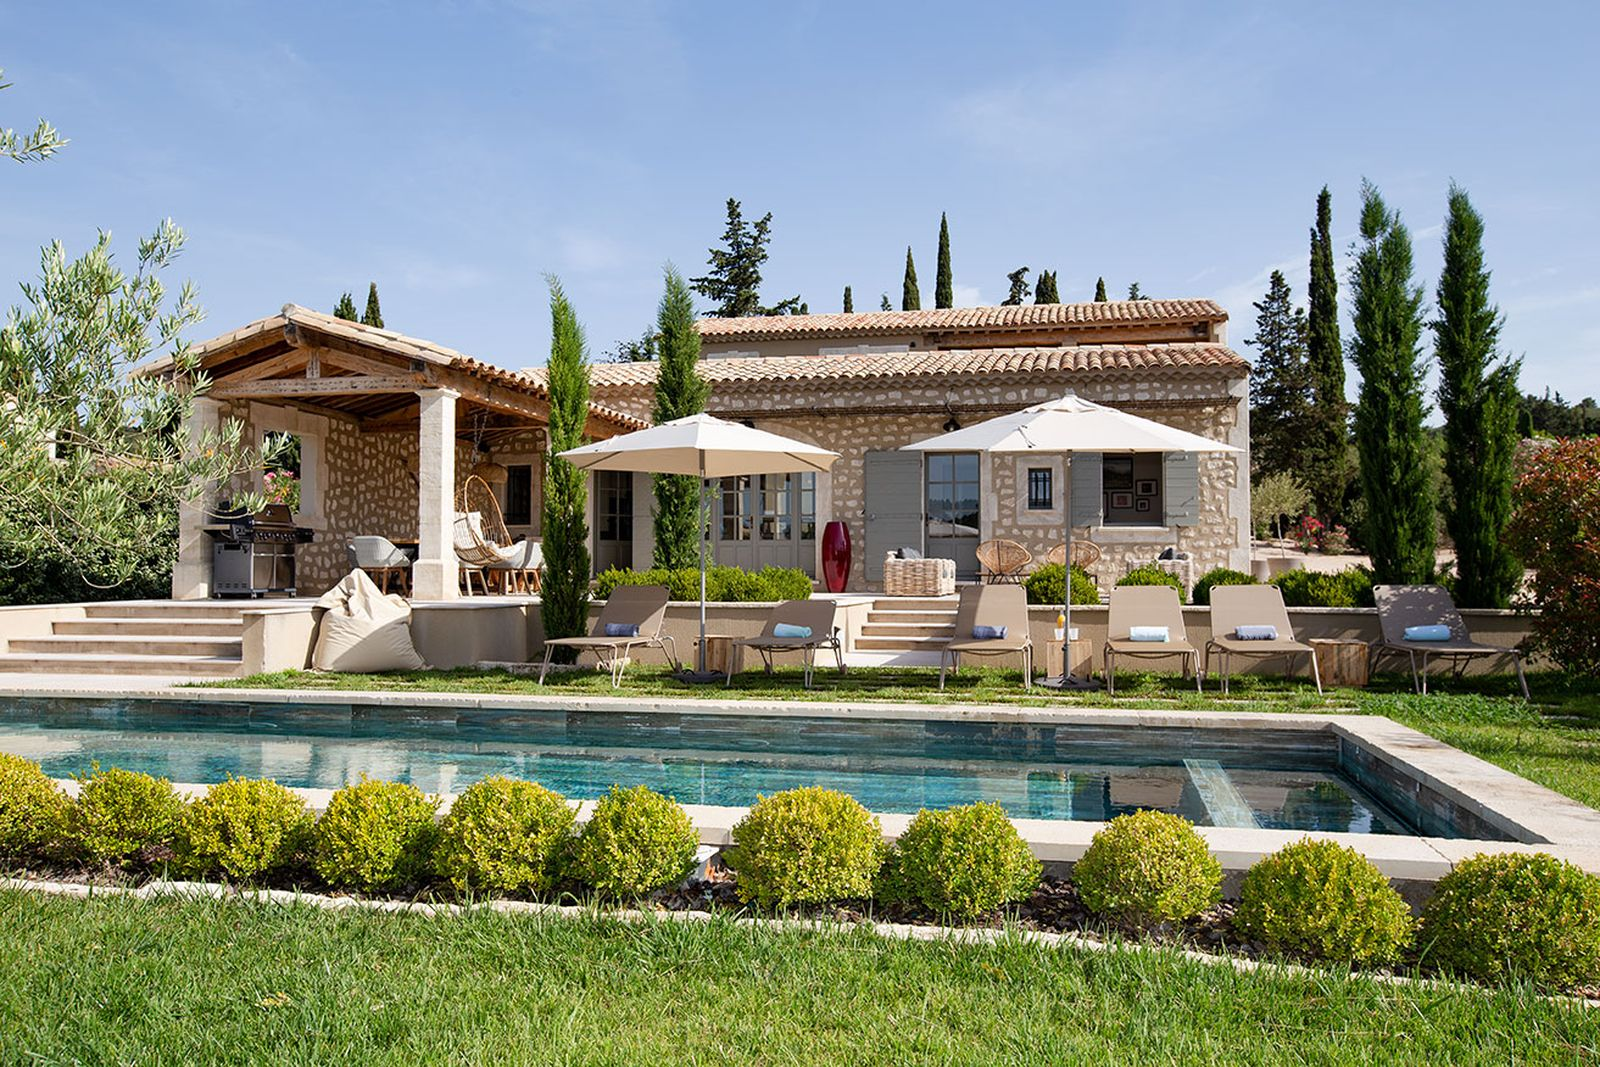 Location de luxueuses Villas à Saint-Rémy-de-Provence